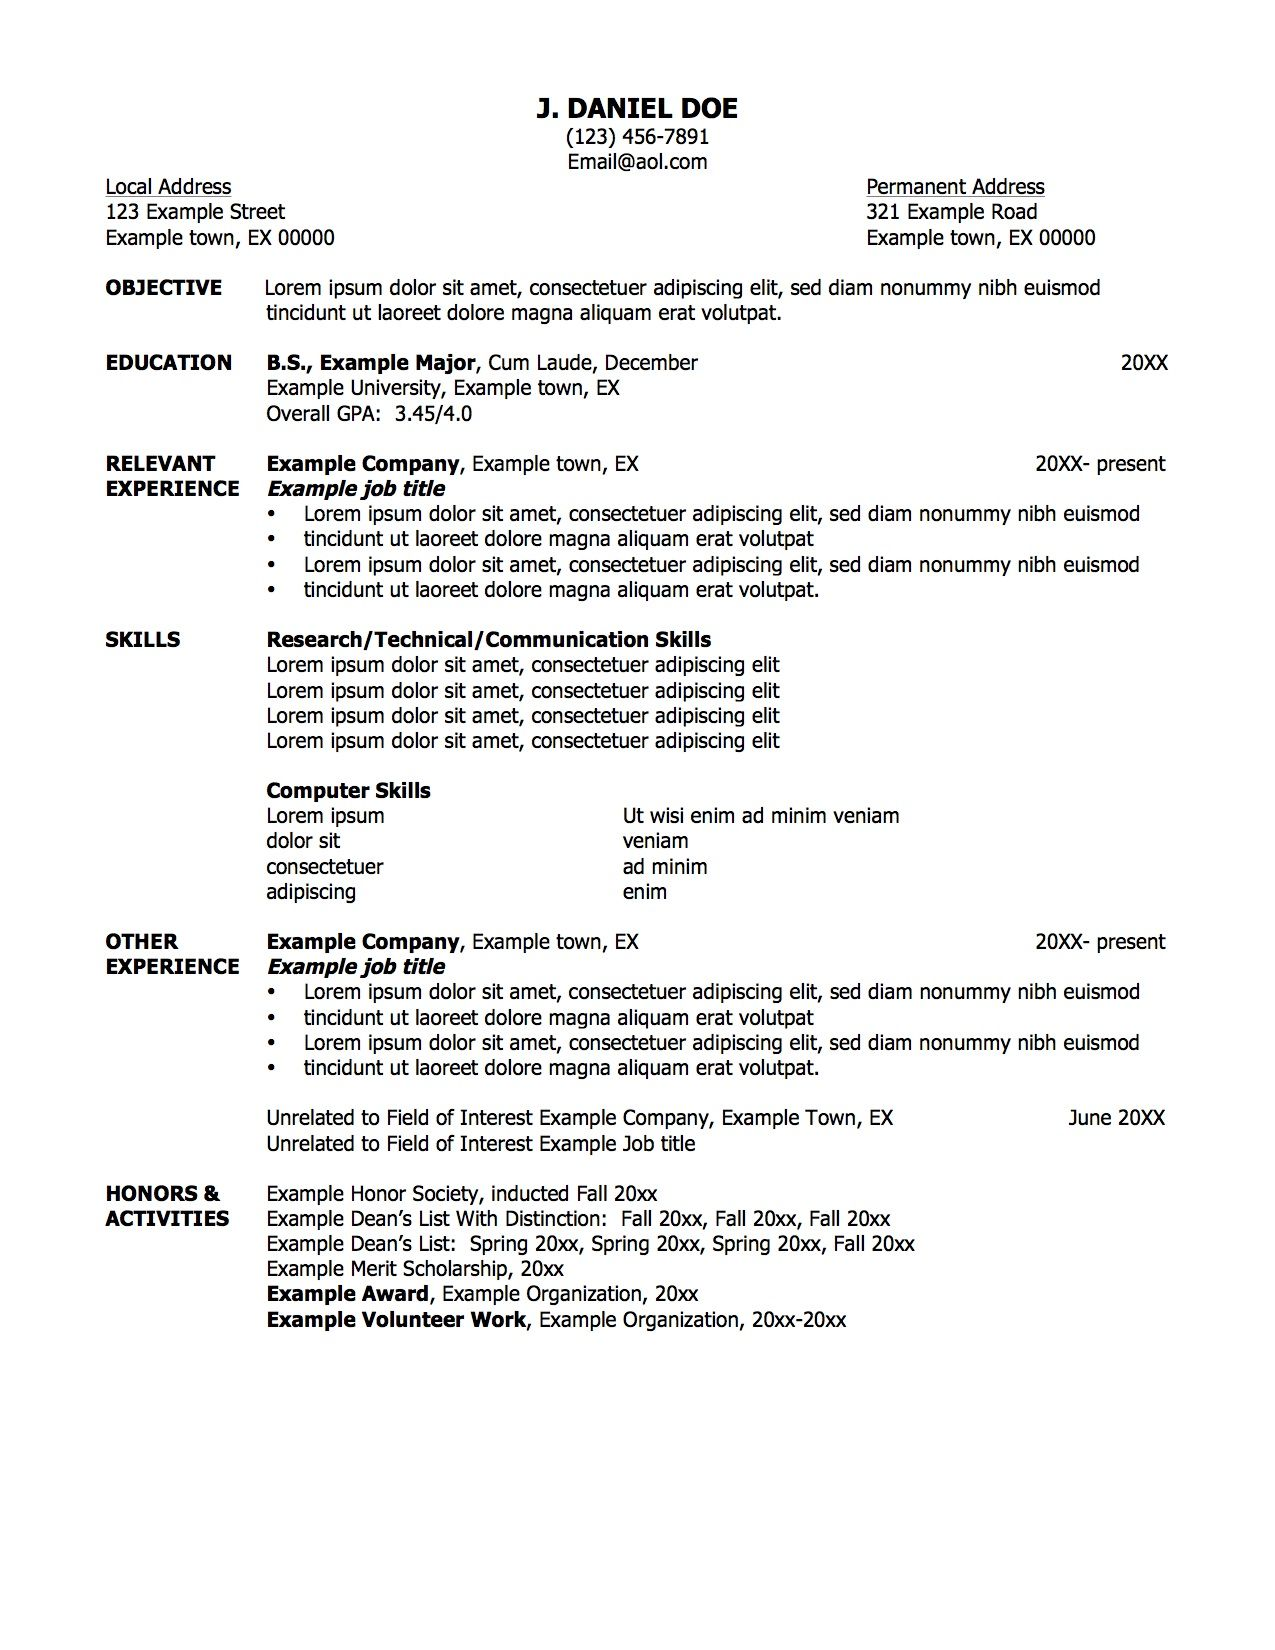 Professional Resumes Template Sample Resume With Professional Title For Job Objective